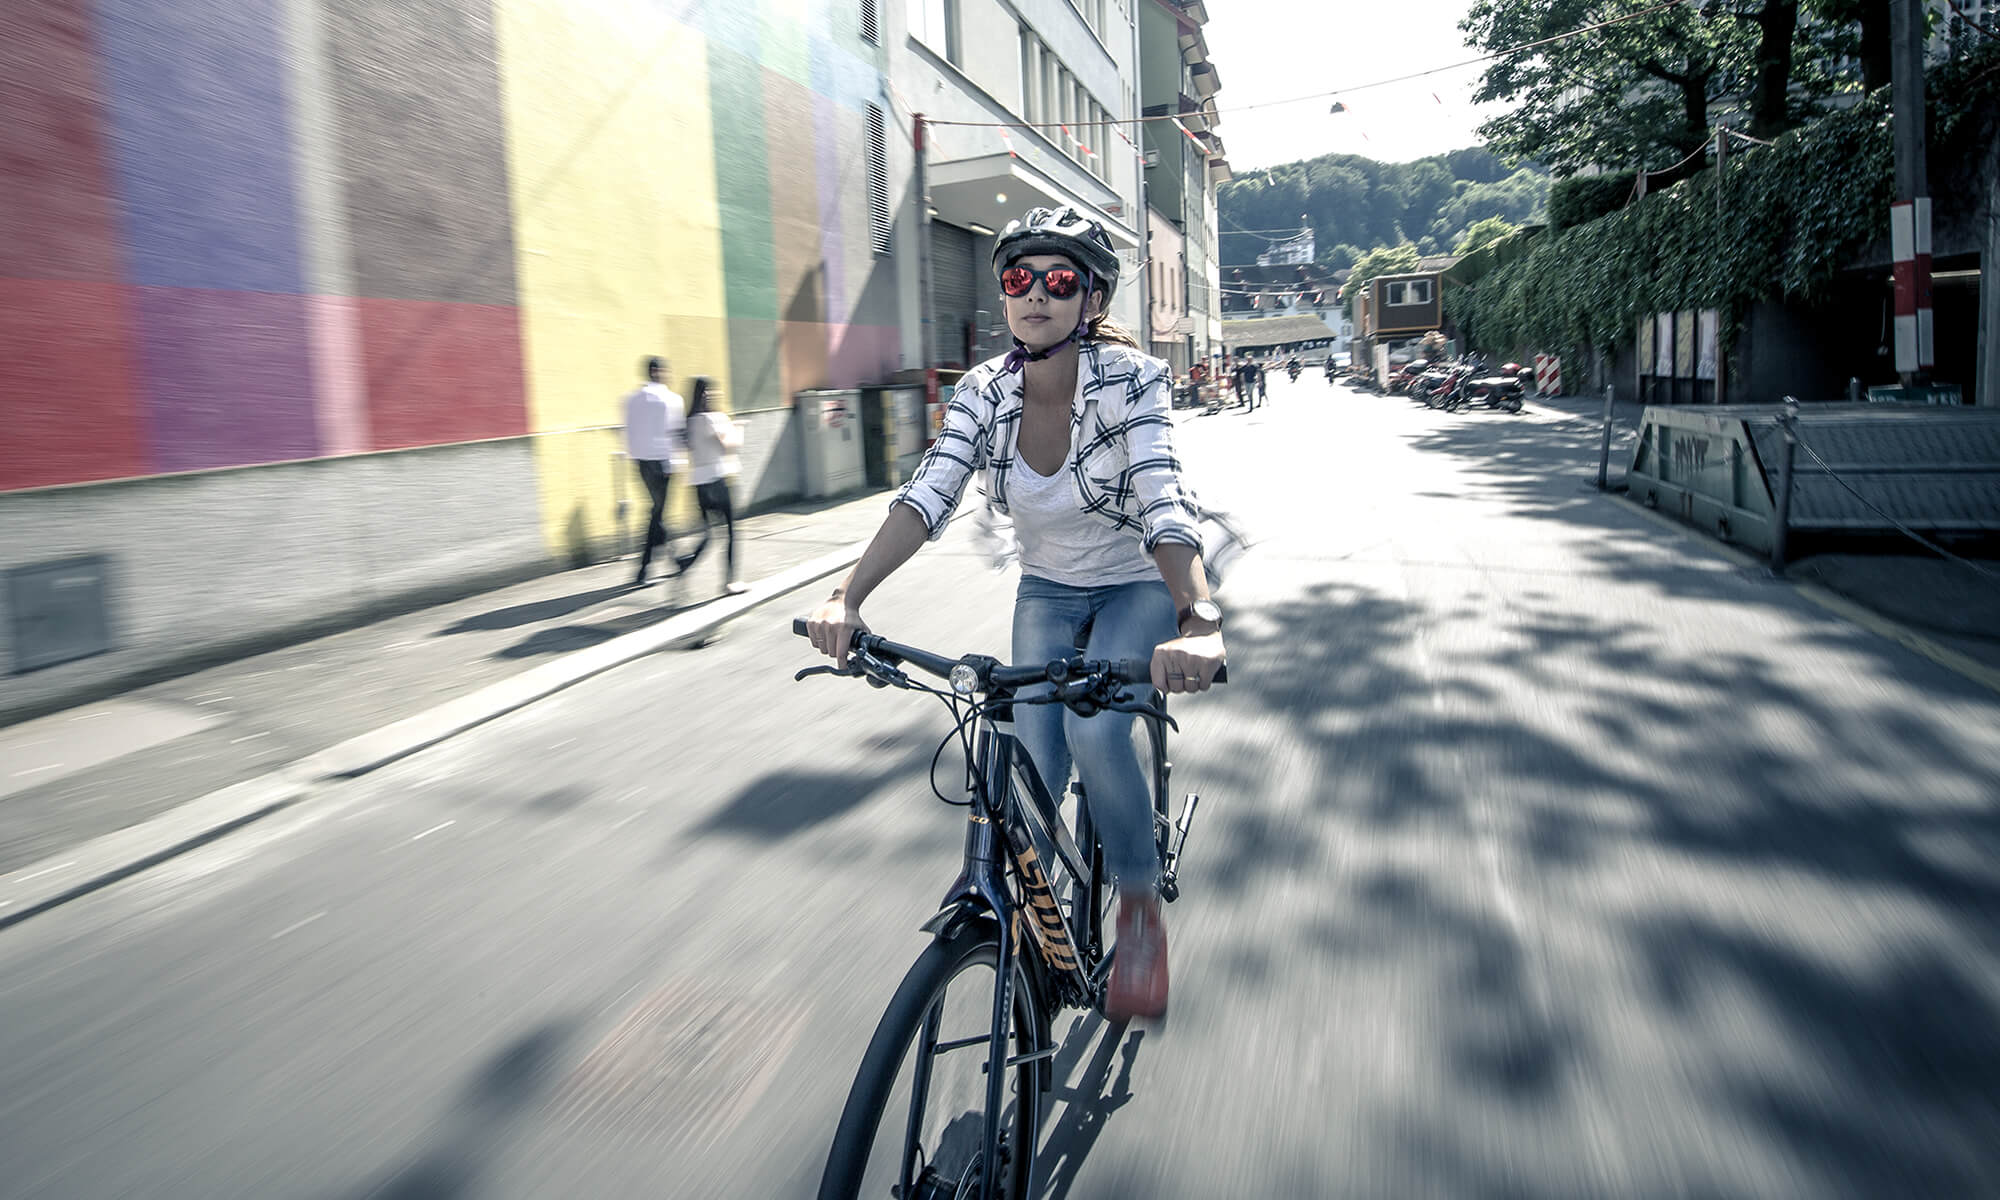 Velolounge - Zürich-Kloten: City-Bike